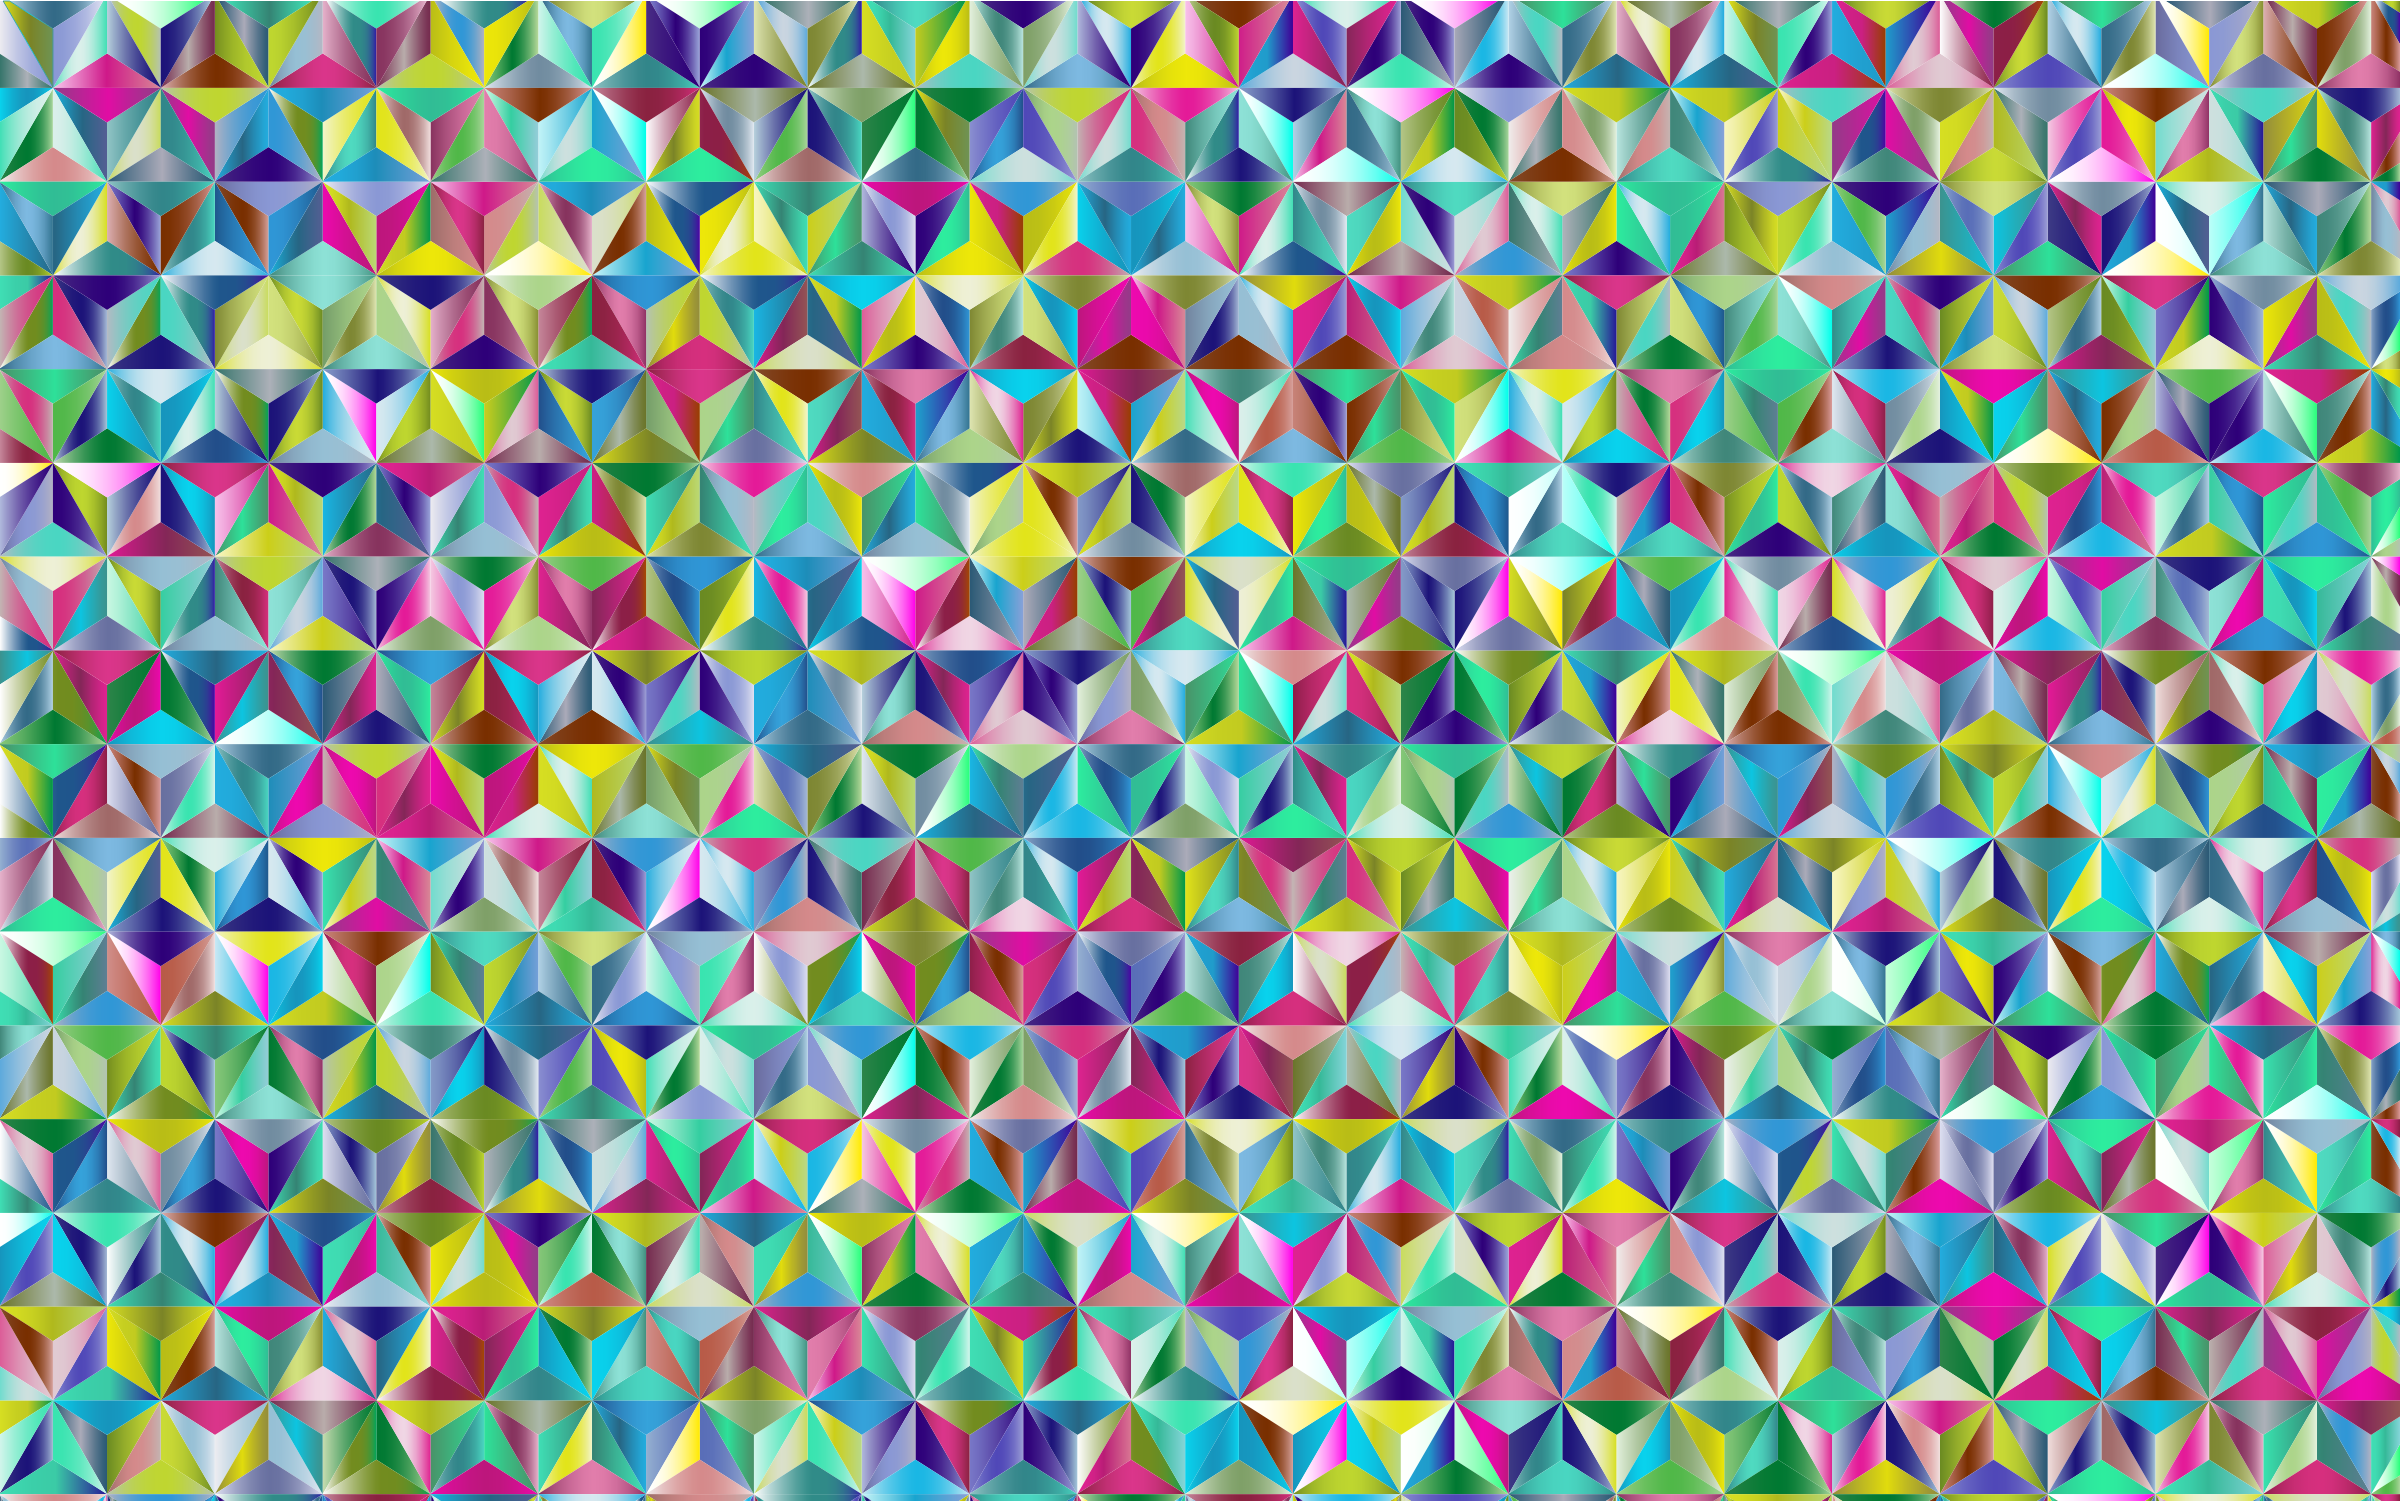 Prismatic Triangular Pattern 2 by GDJ